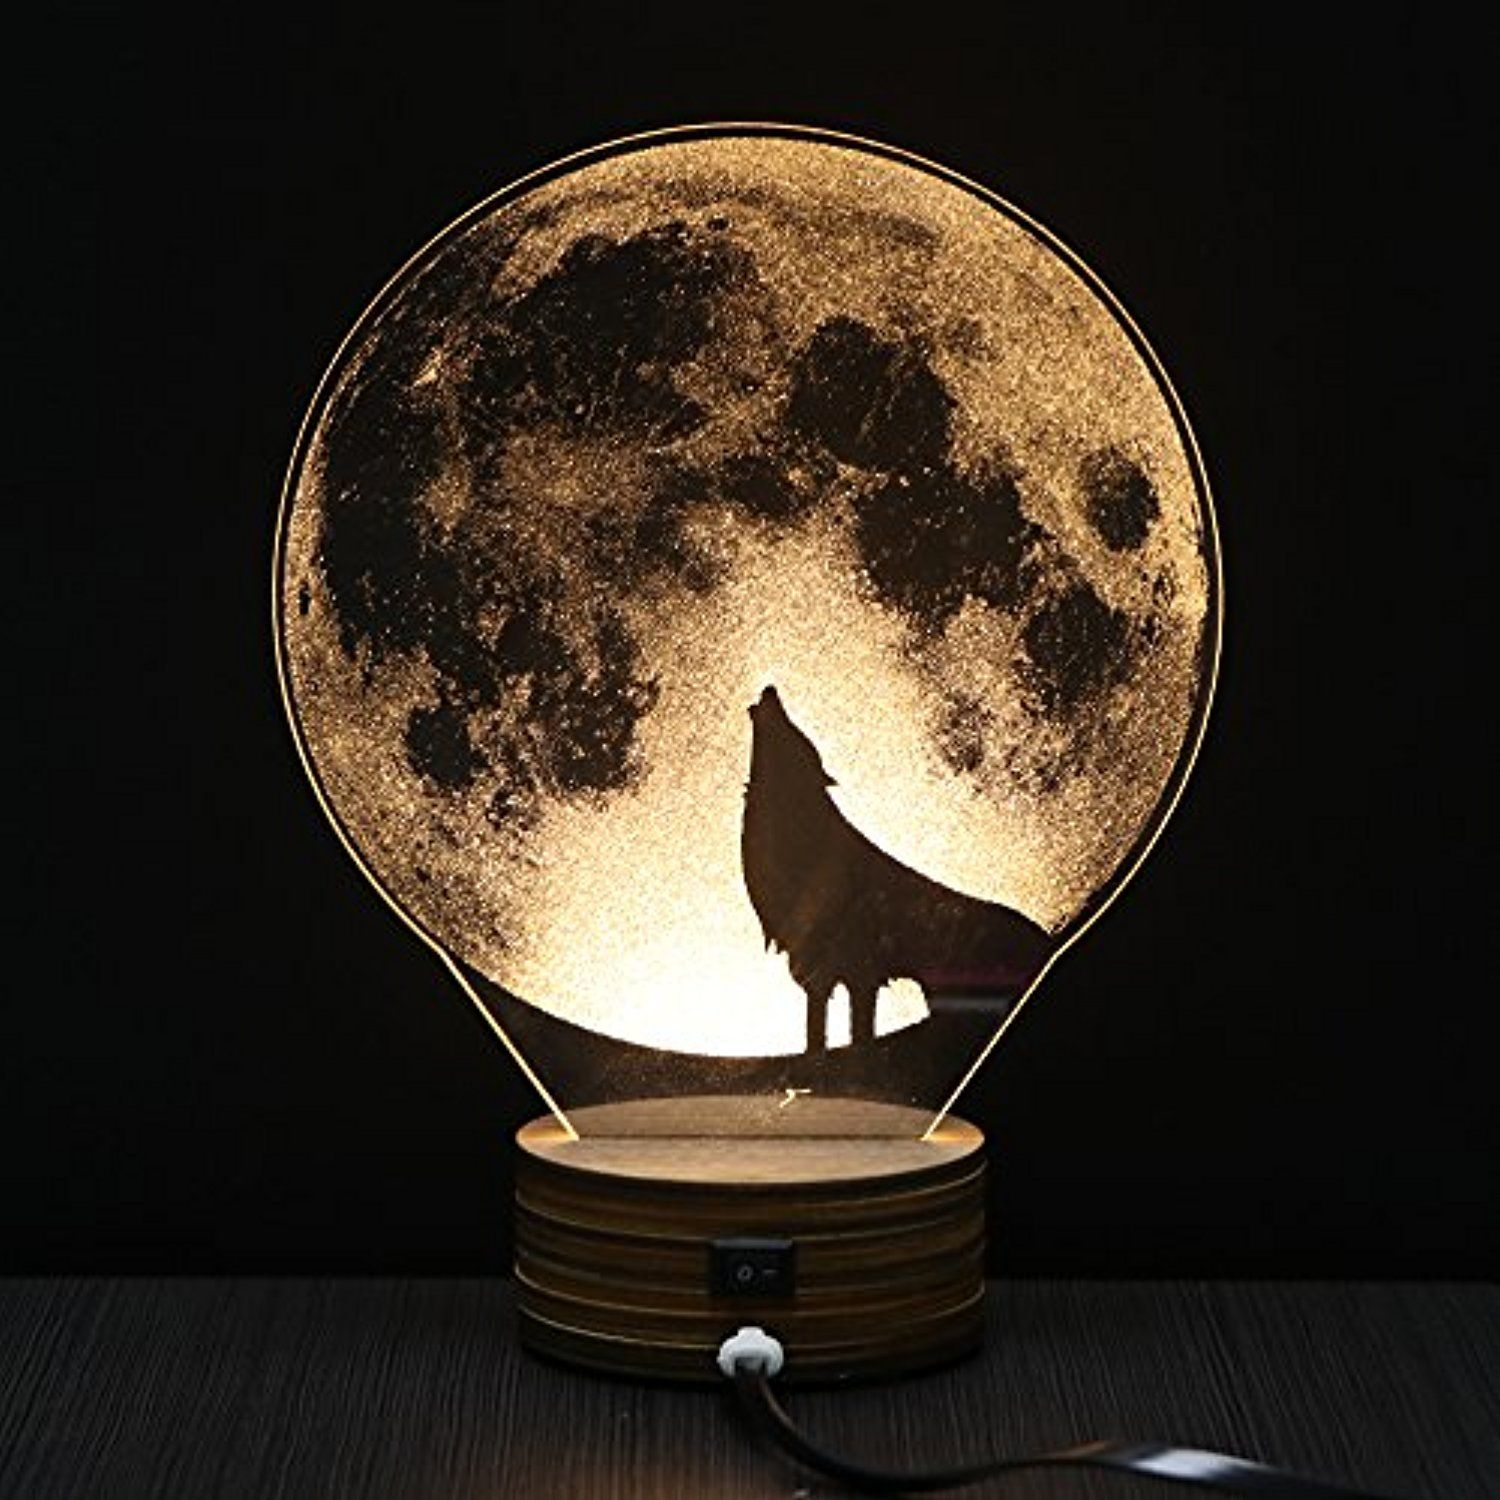 Led Table Lamp Eco Home 3d Illusion Night Light Desk Lamp Usb 3d Illusion Lamp Acrylic Creative Gift Toys Decorati 3d Illusion Lamp Led Table Lamp Night Light